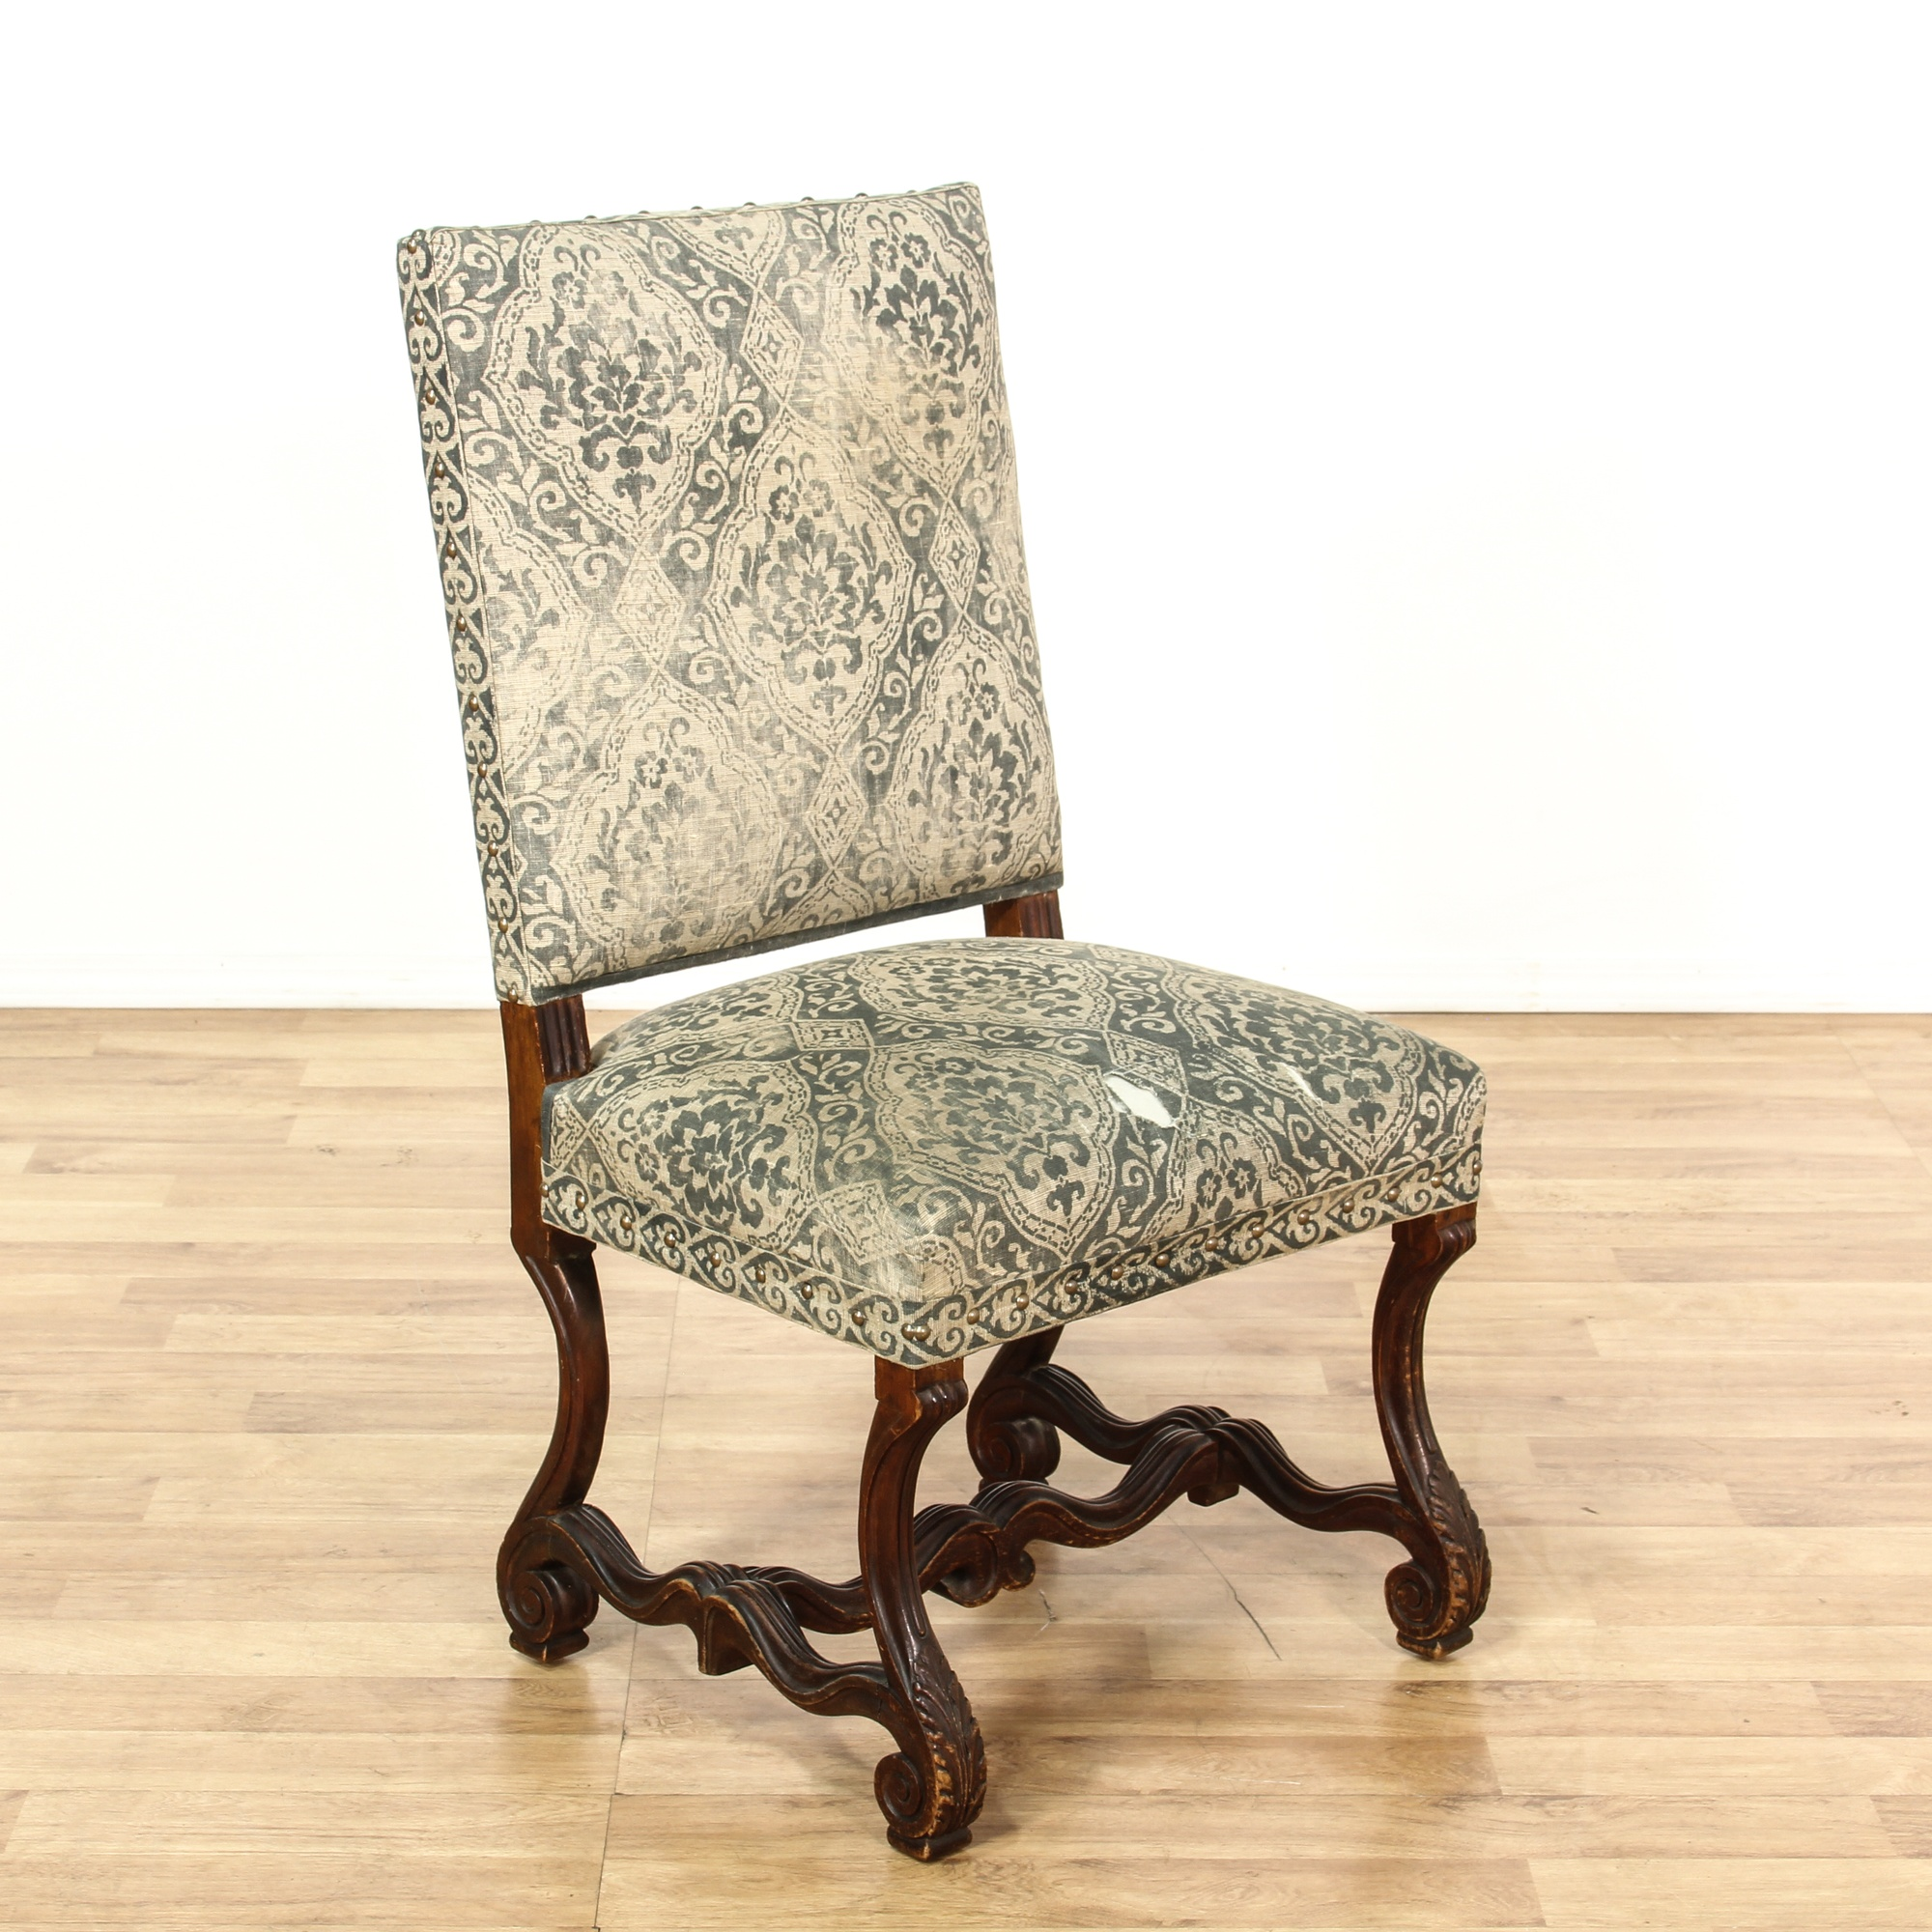 Astonishing Carved Wood Burlap Upholstered Accent Chair Loveseat Unemploymentrelief Wooden Chair Designs For Living Room Unemploymentrelieforg